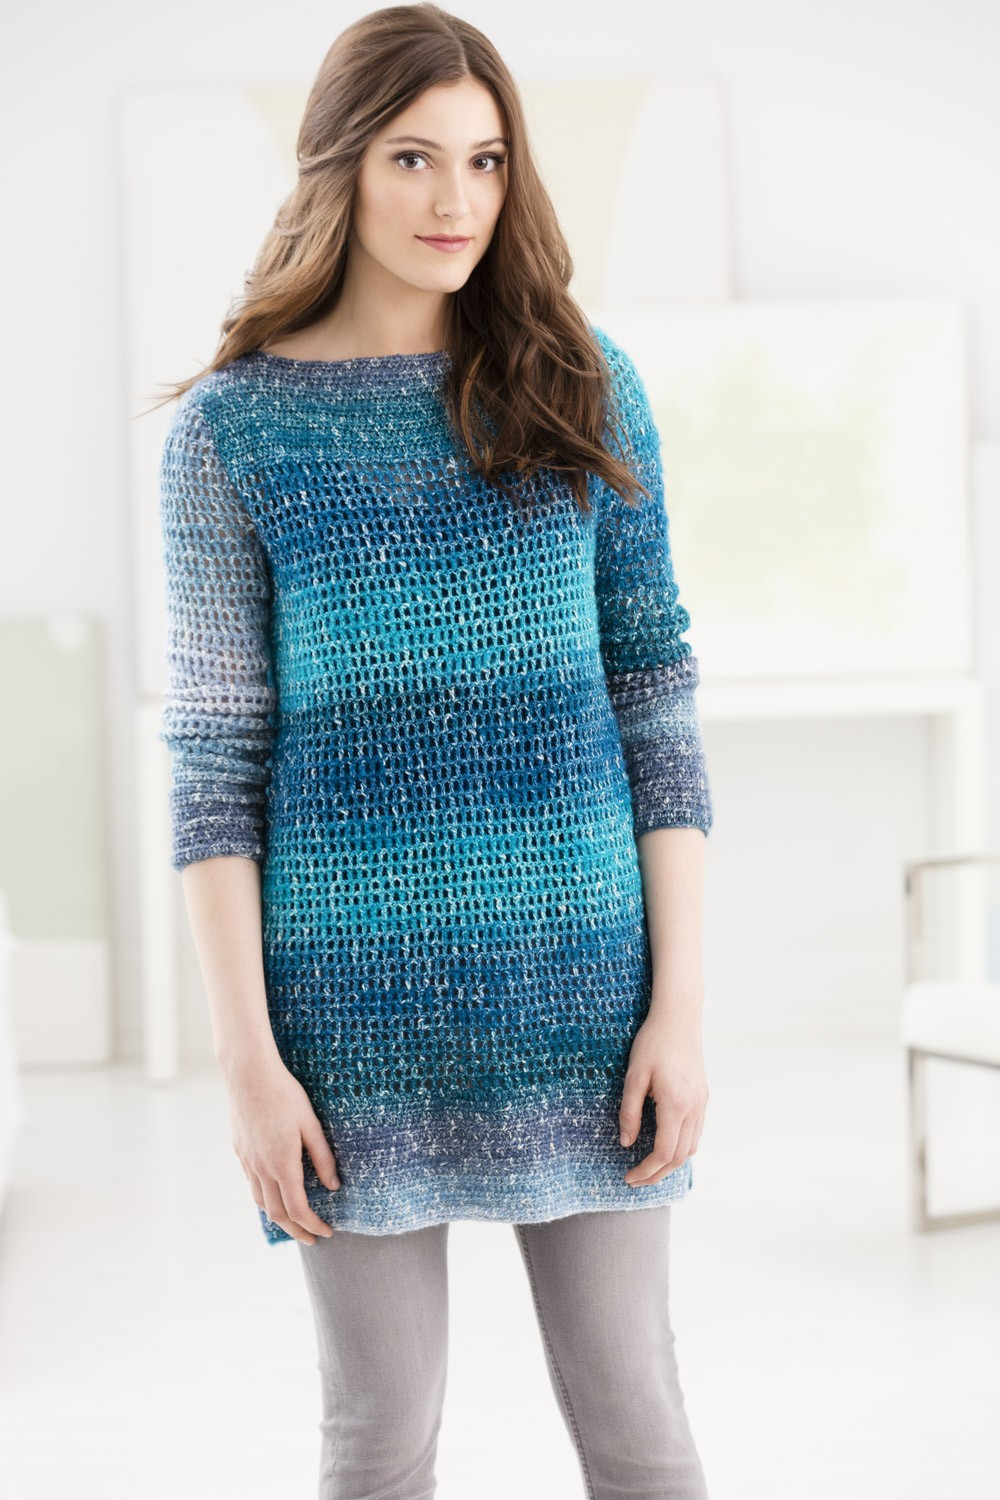 Lovely Patterns to Make with Shawl In A Ball Lion Brand Free Crochet Patterns Of New 46 Pictures Lion Brand Free Crochet Patterns